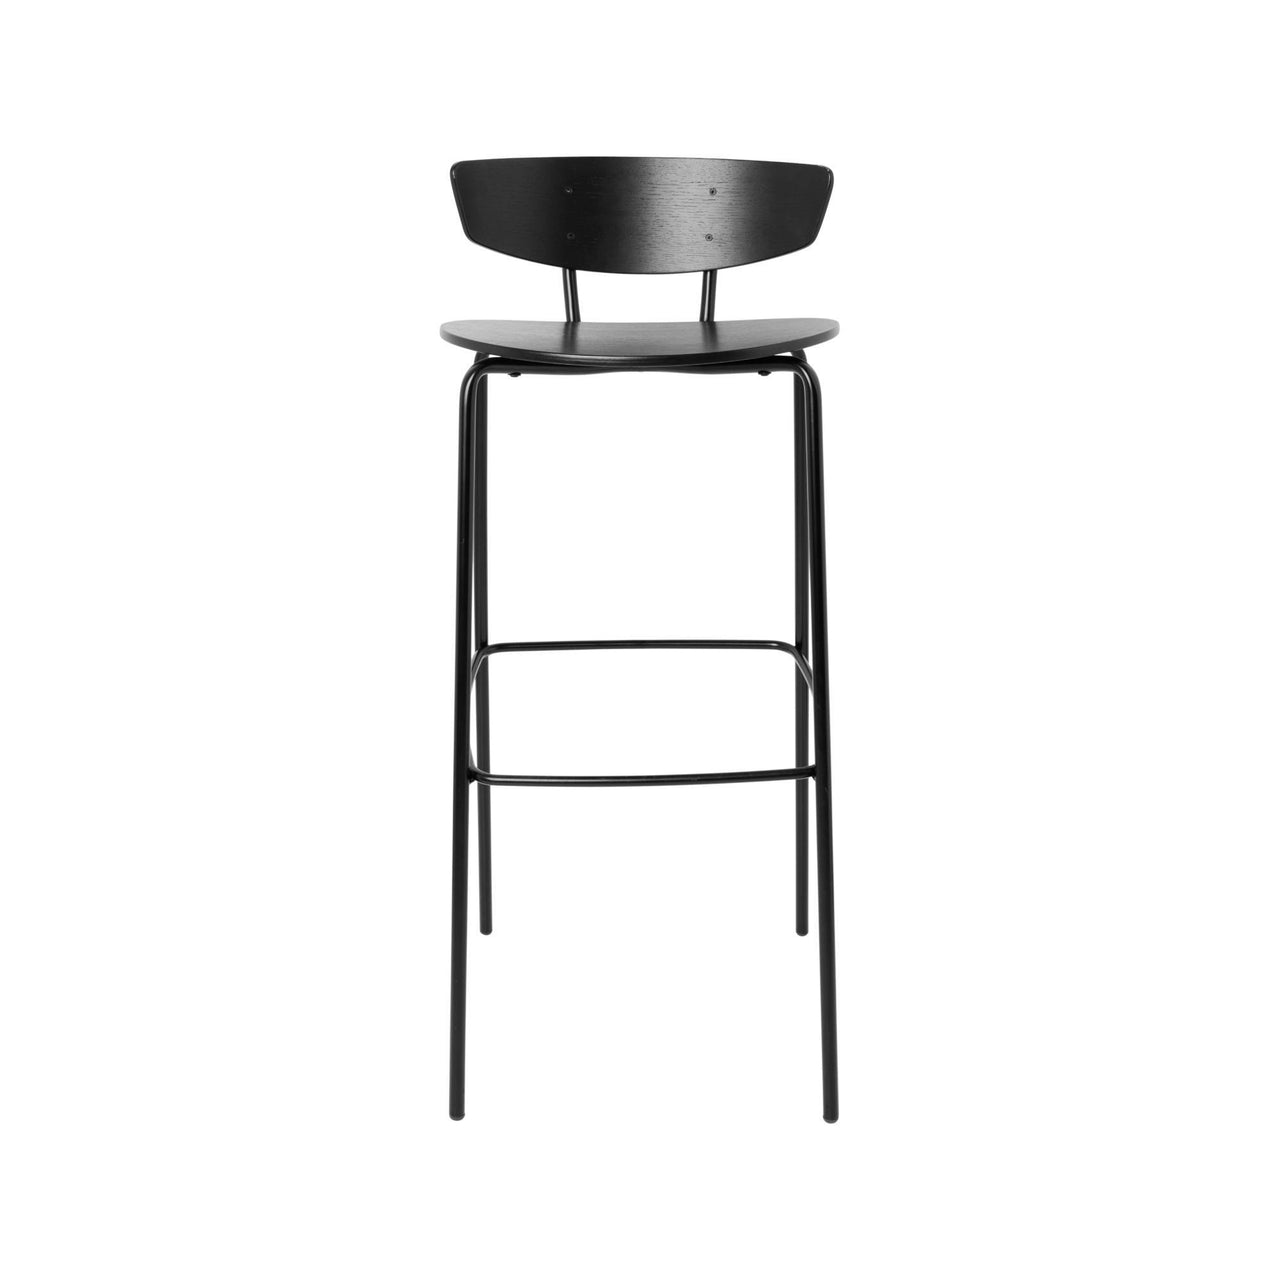 Herman Bar Chair: Black + High